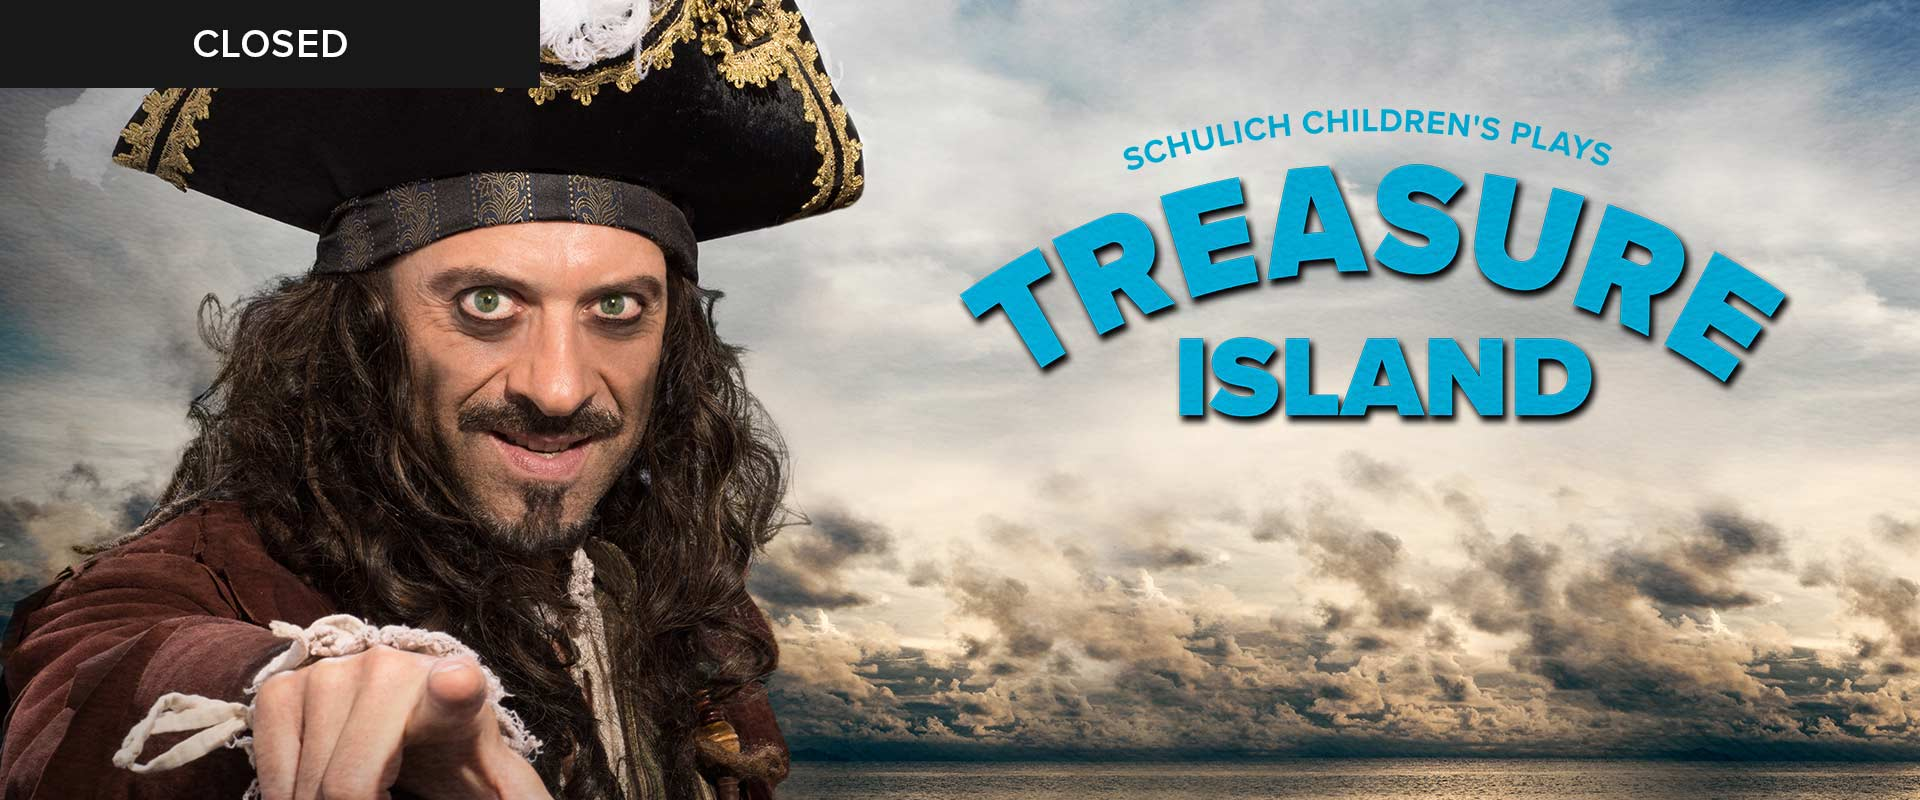 Publicity image from Treasure Island featuring Juan Chioran